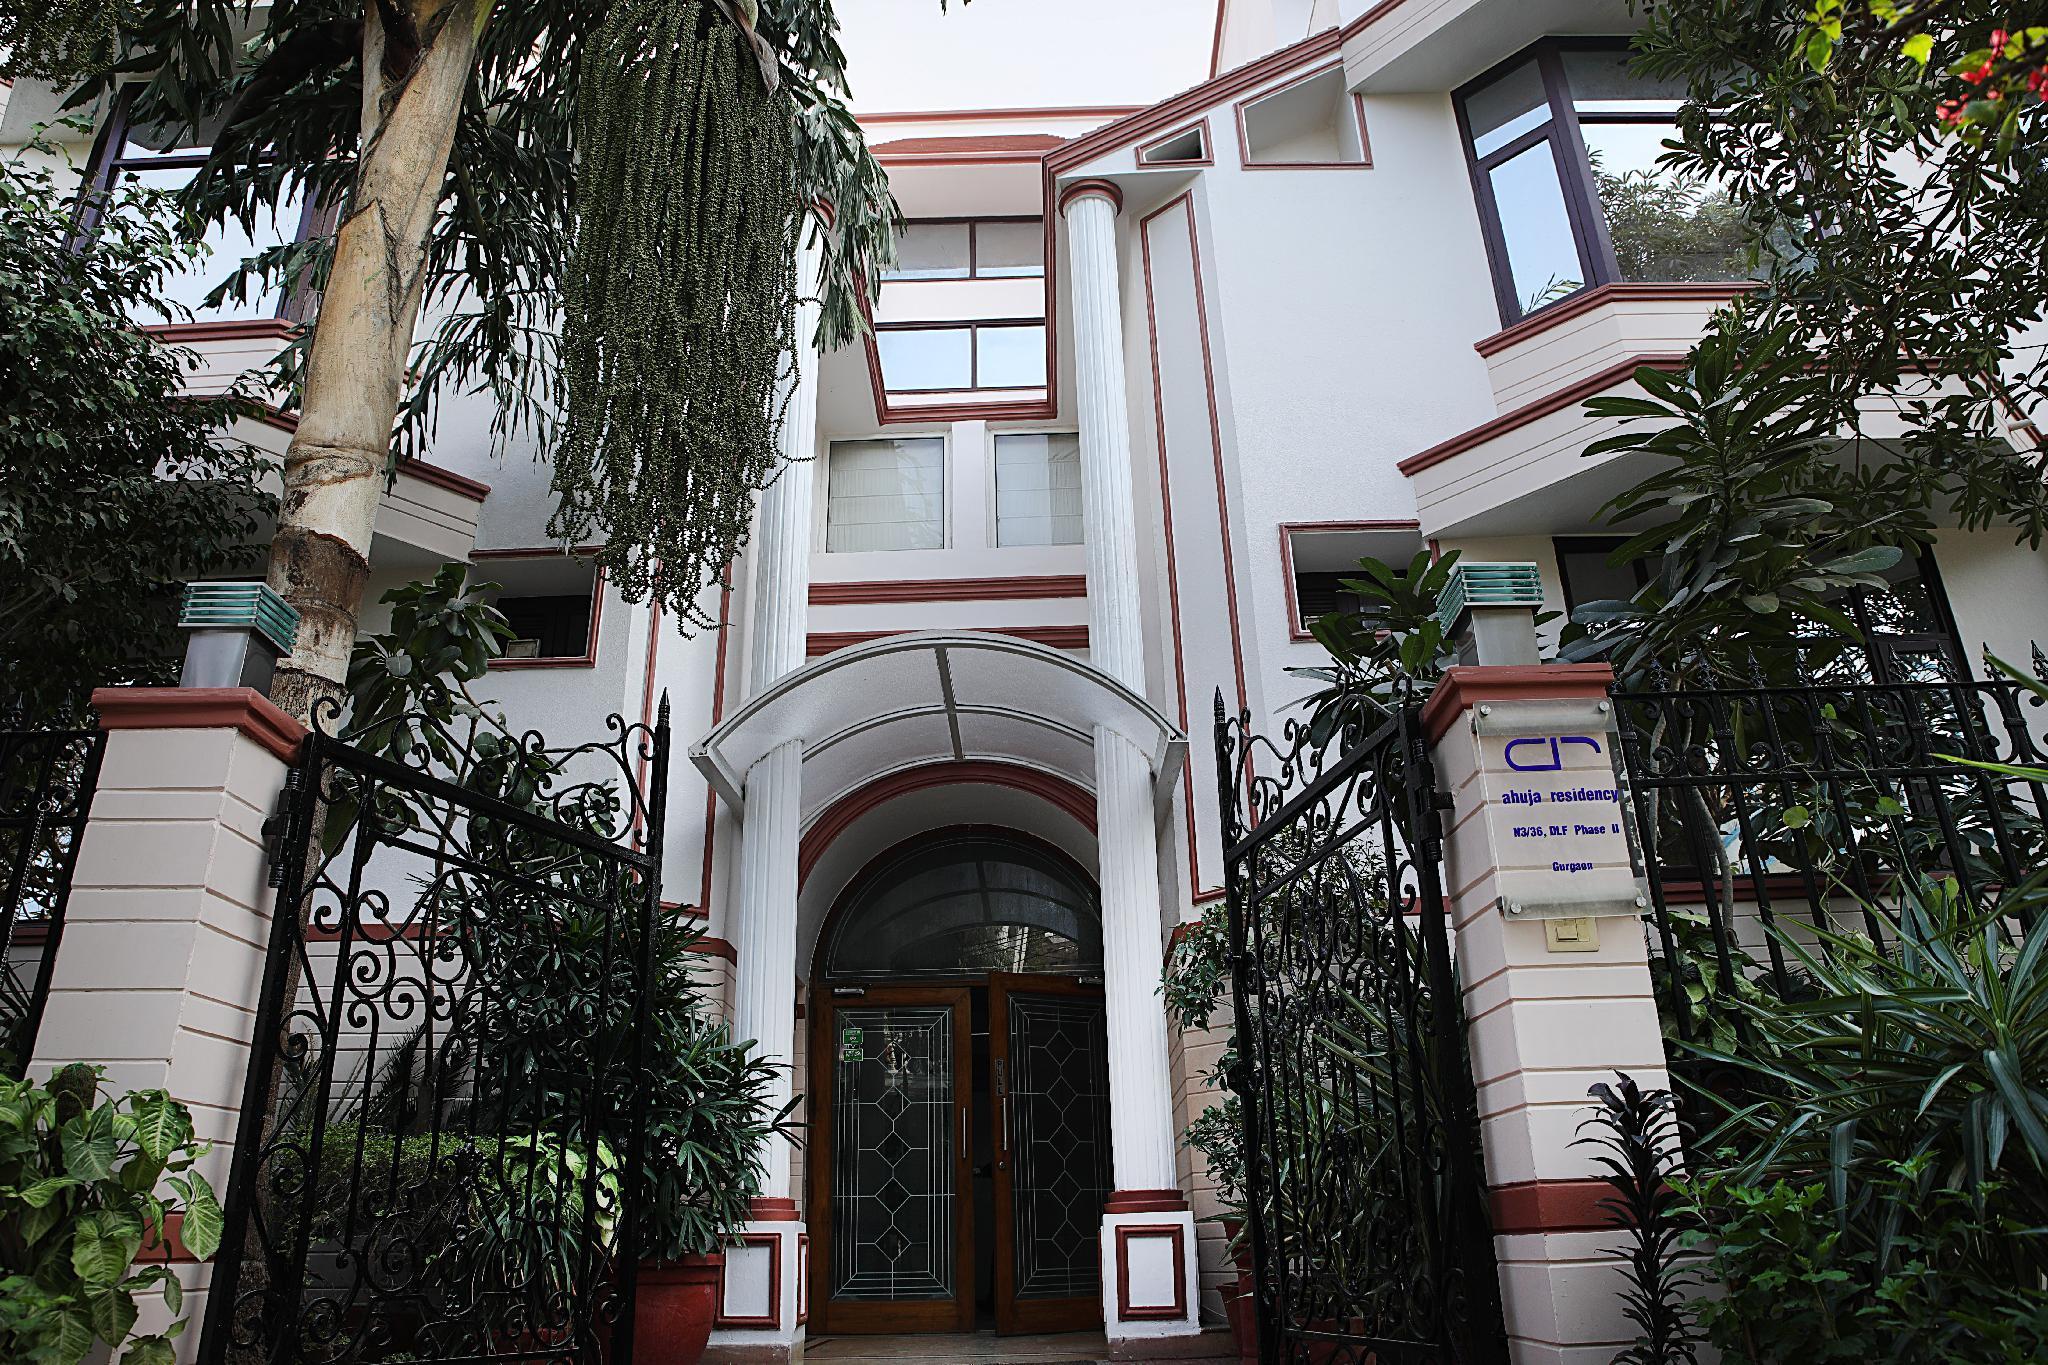 Ahuja Residency-DLF Phase II, New Delhi and NCR, India